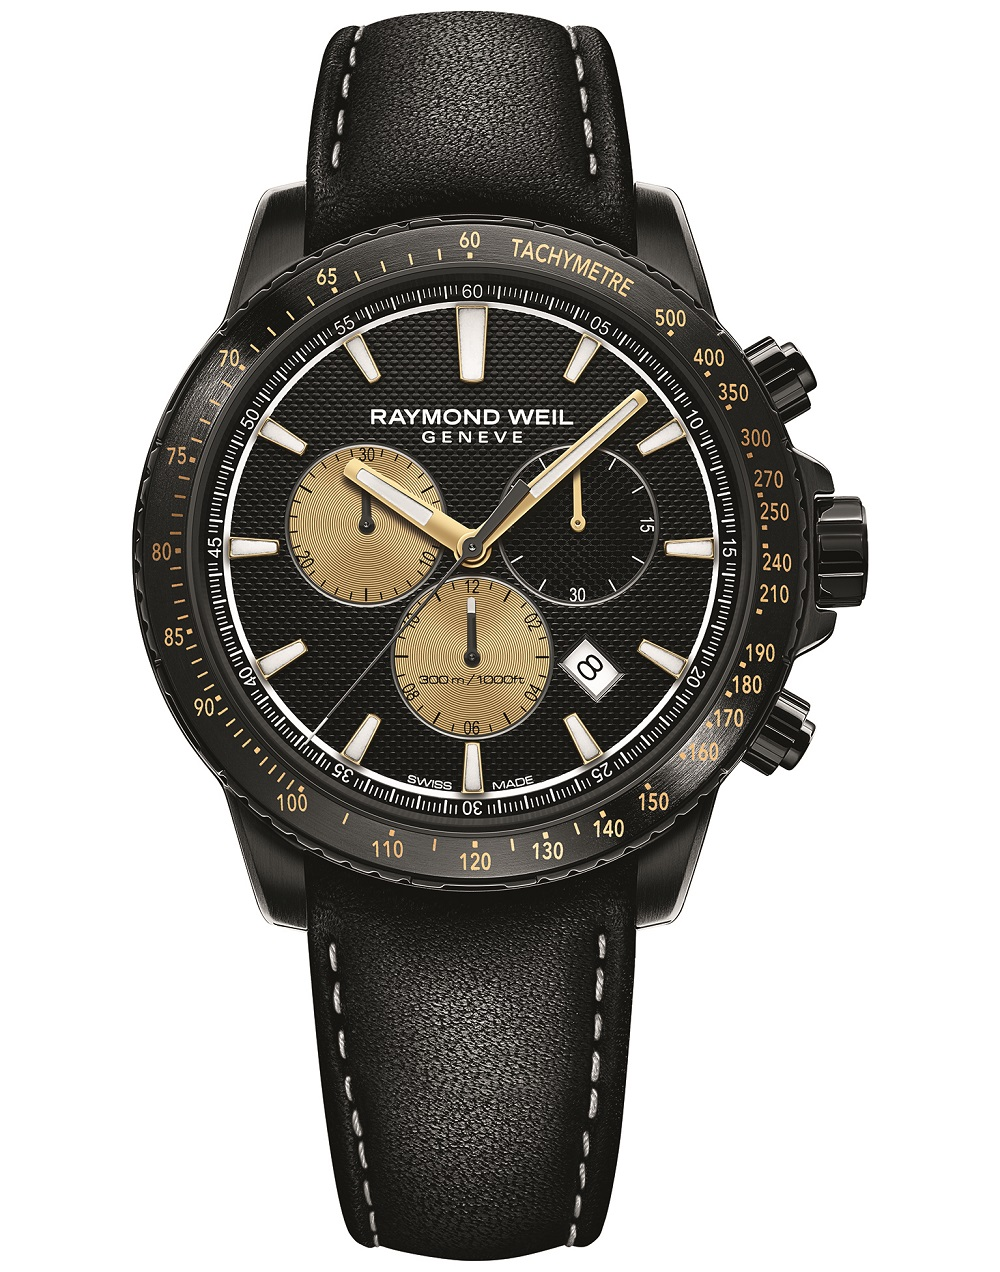 De Raymond Weil Marshall Amplification Limited Edition is een ruige rocker met quartz precisie